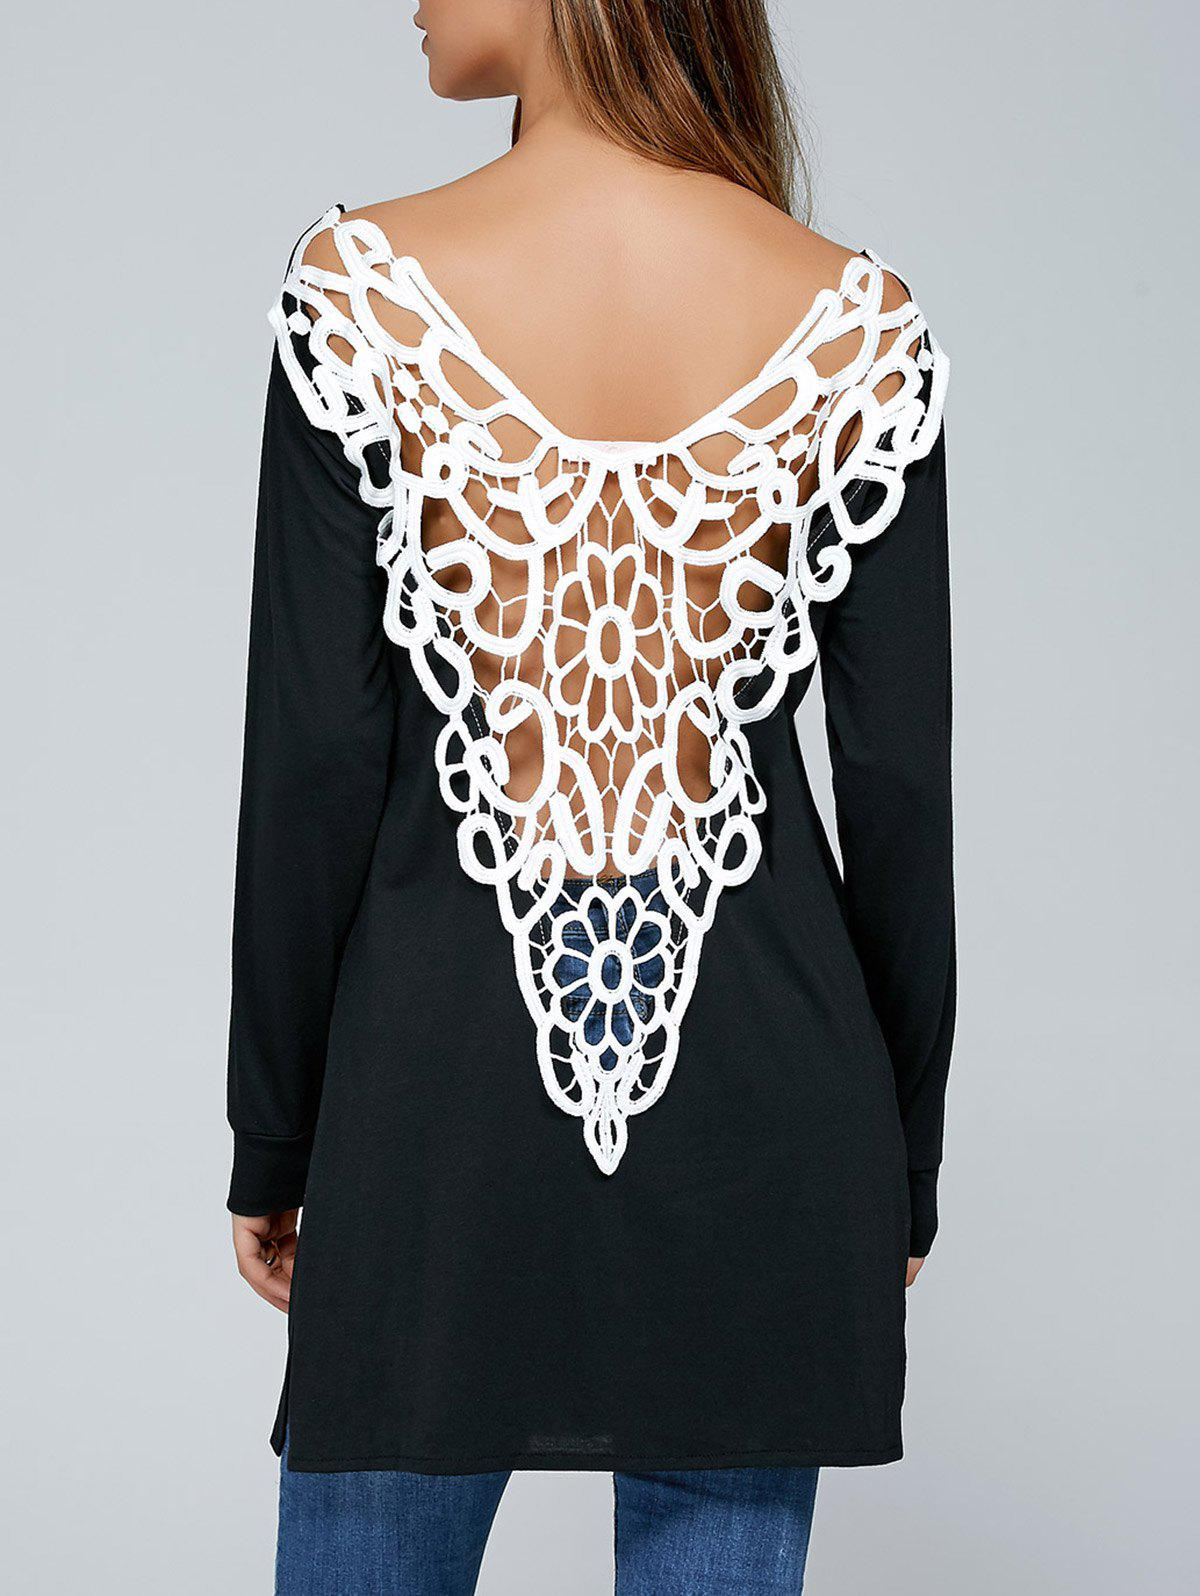 Cutwork Side Slit Backless T-shirt - Noir M